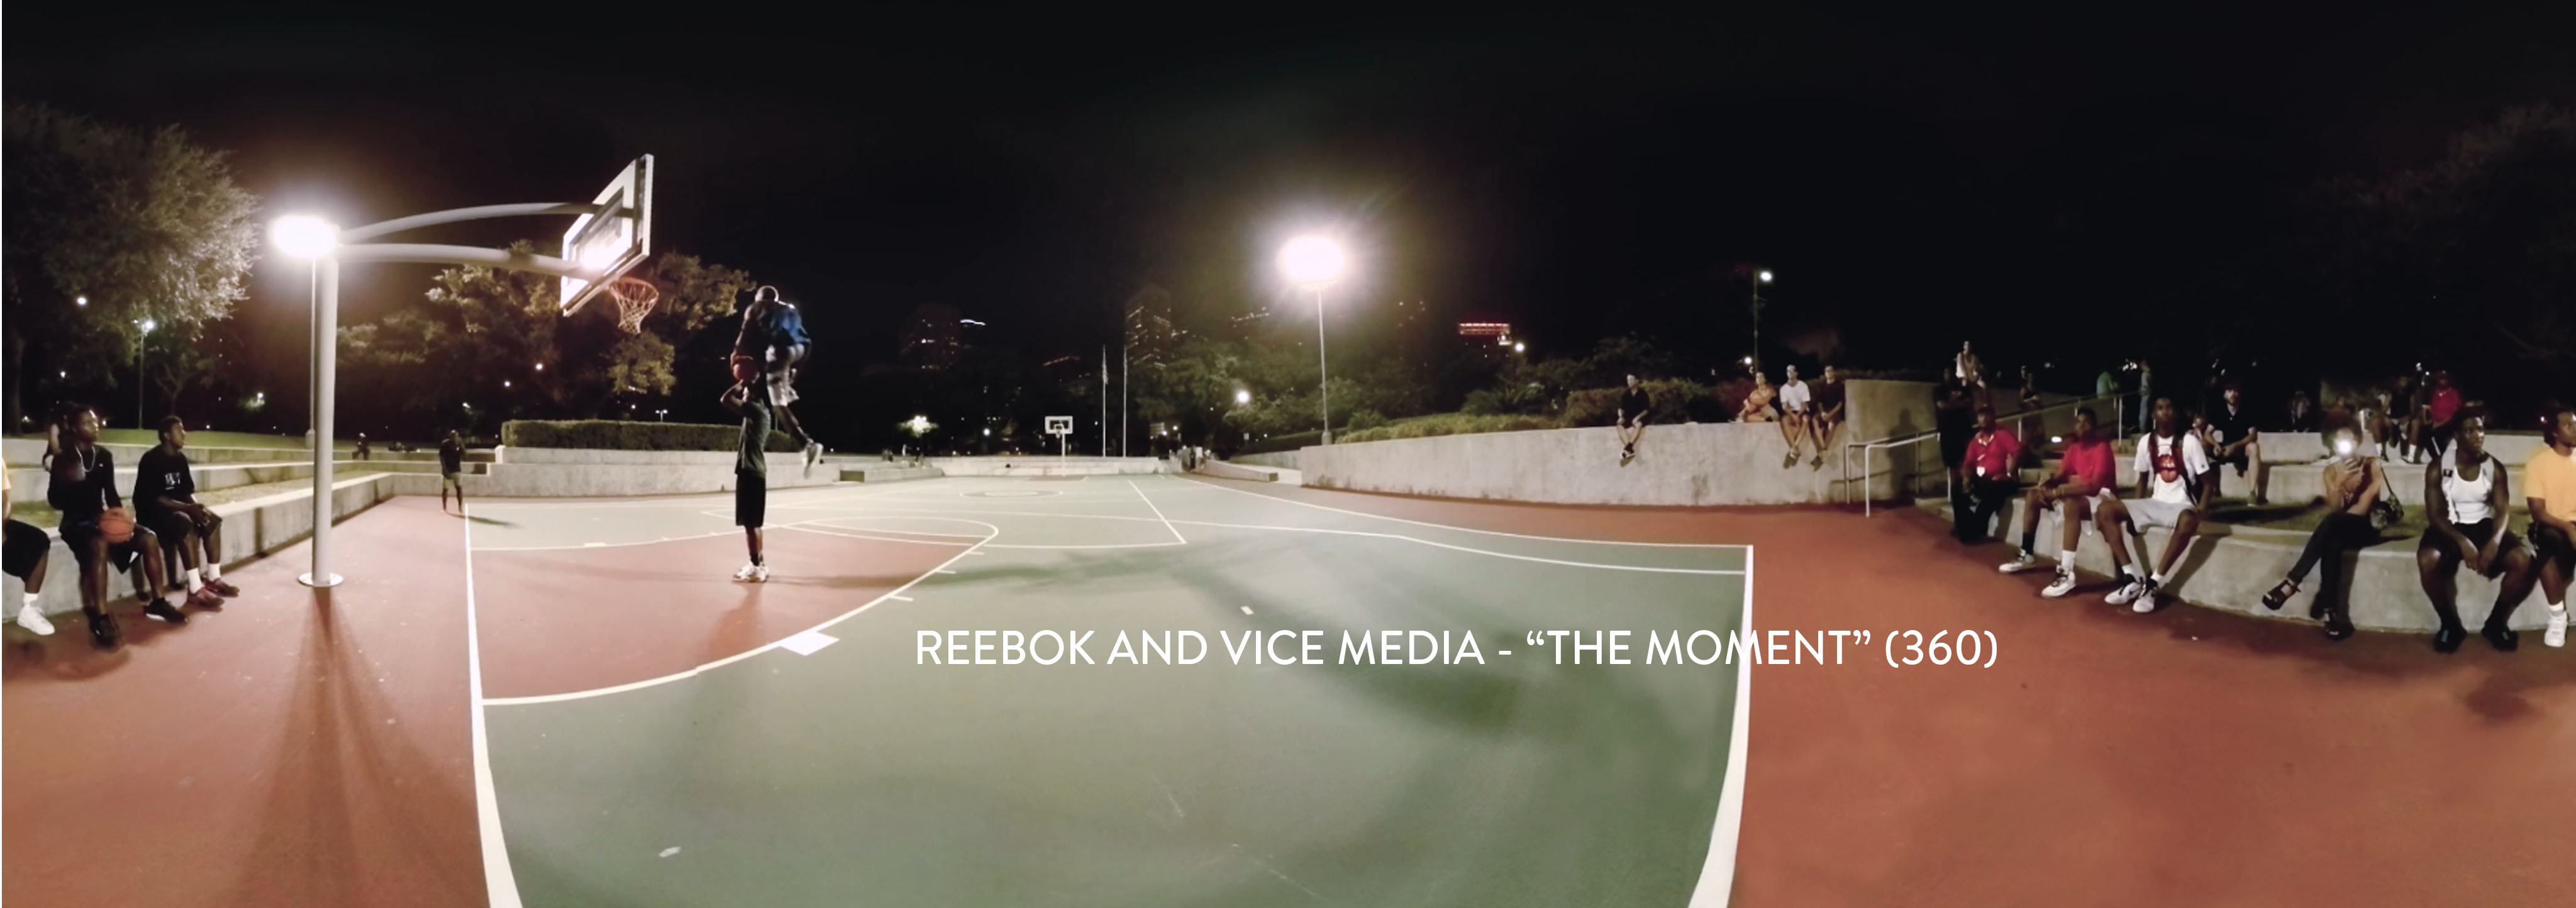 "DQ_Splash__0005_REEBOK AND VICE MEDIA - ""THE MOMENT"" (360)"